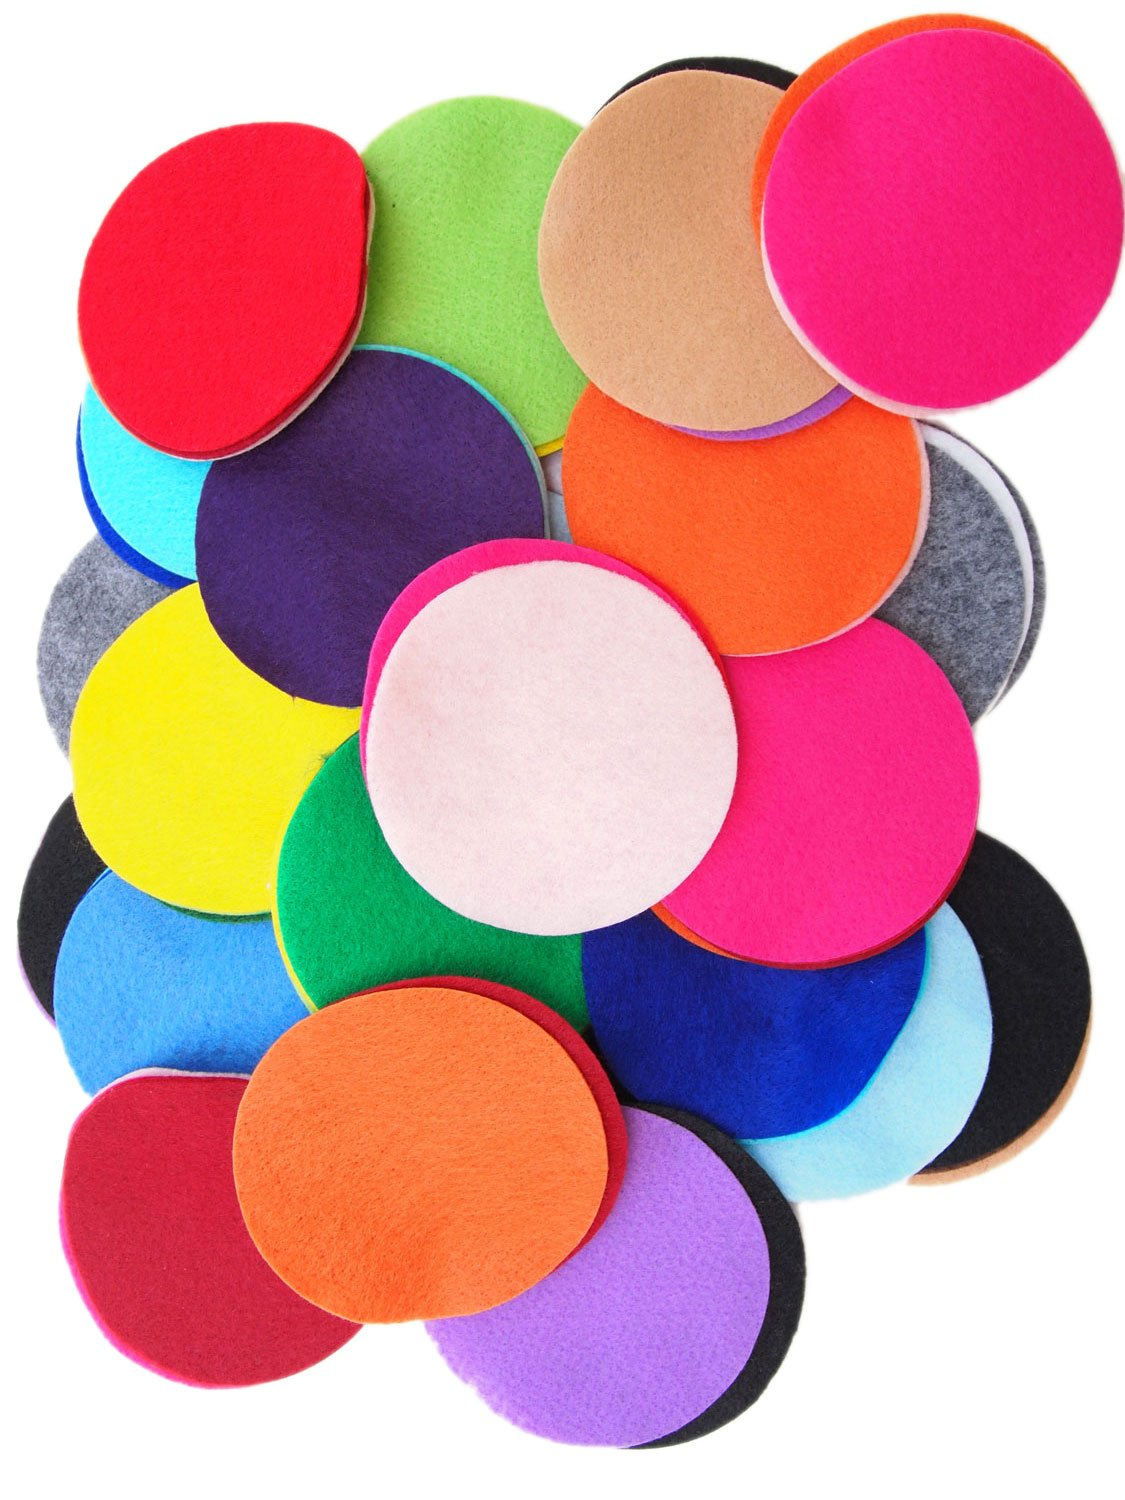 Playfully Ever After 4 Inch Mixed Color Assortment 100 pc Felt Craft Circles PEA-FELT-4In-100pcMix